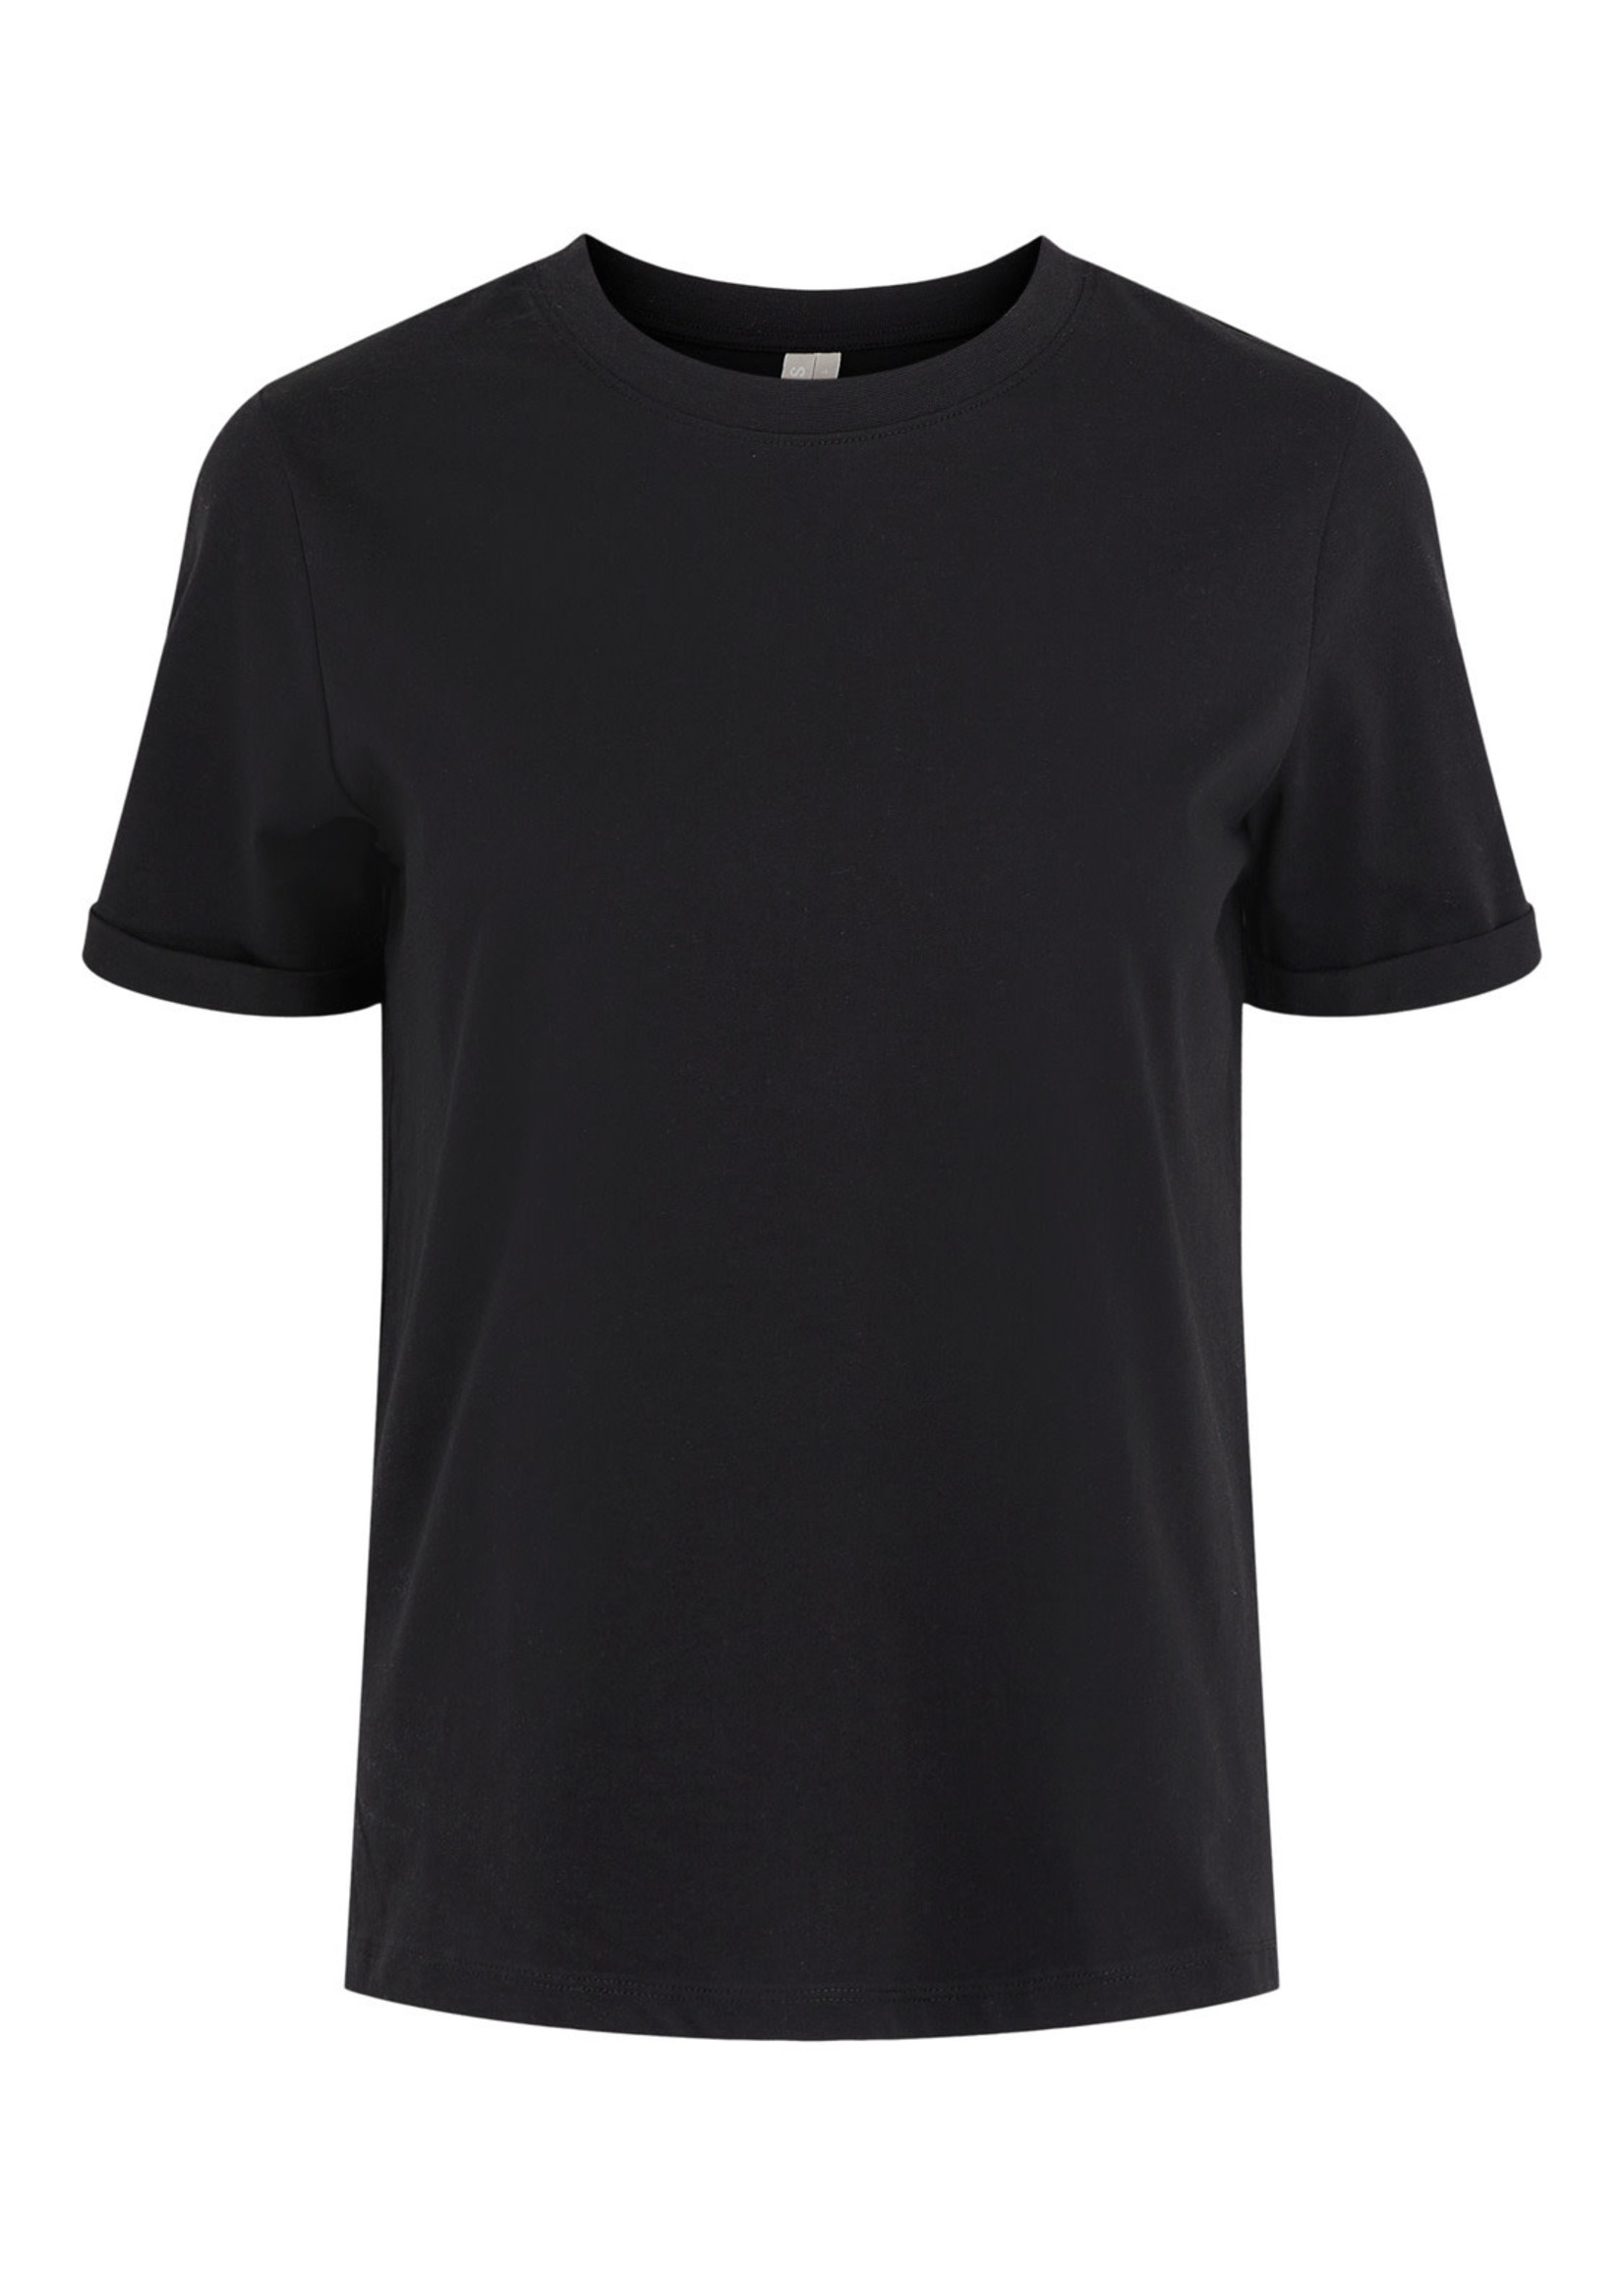 PIECES RIA SS FOLD UP TEE,black